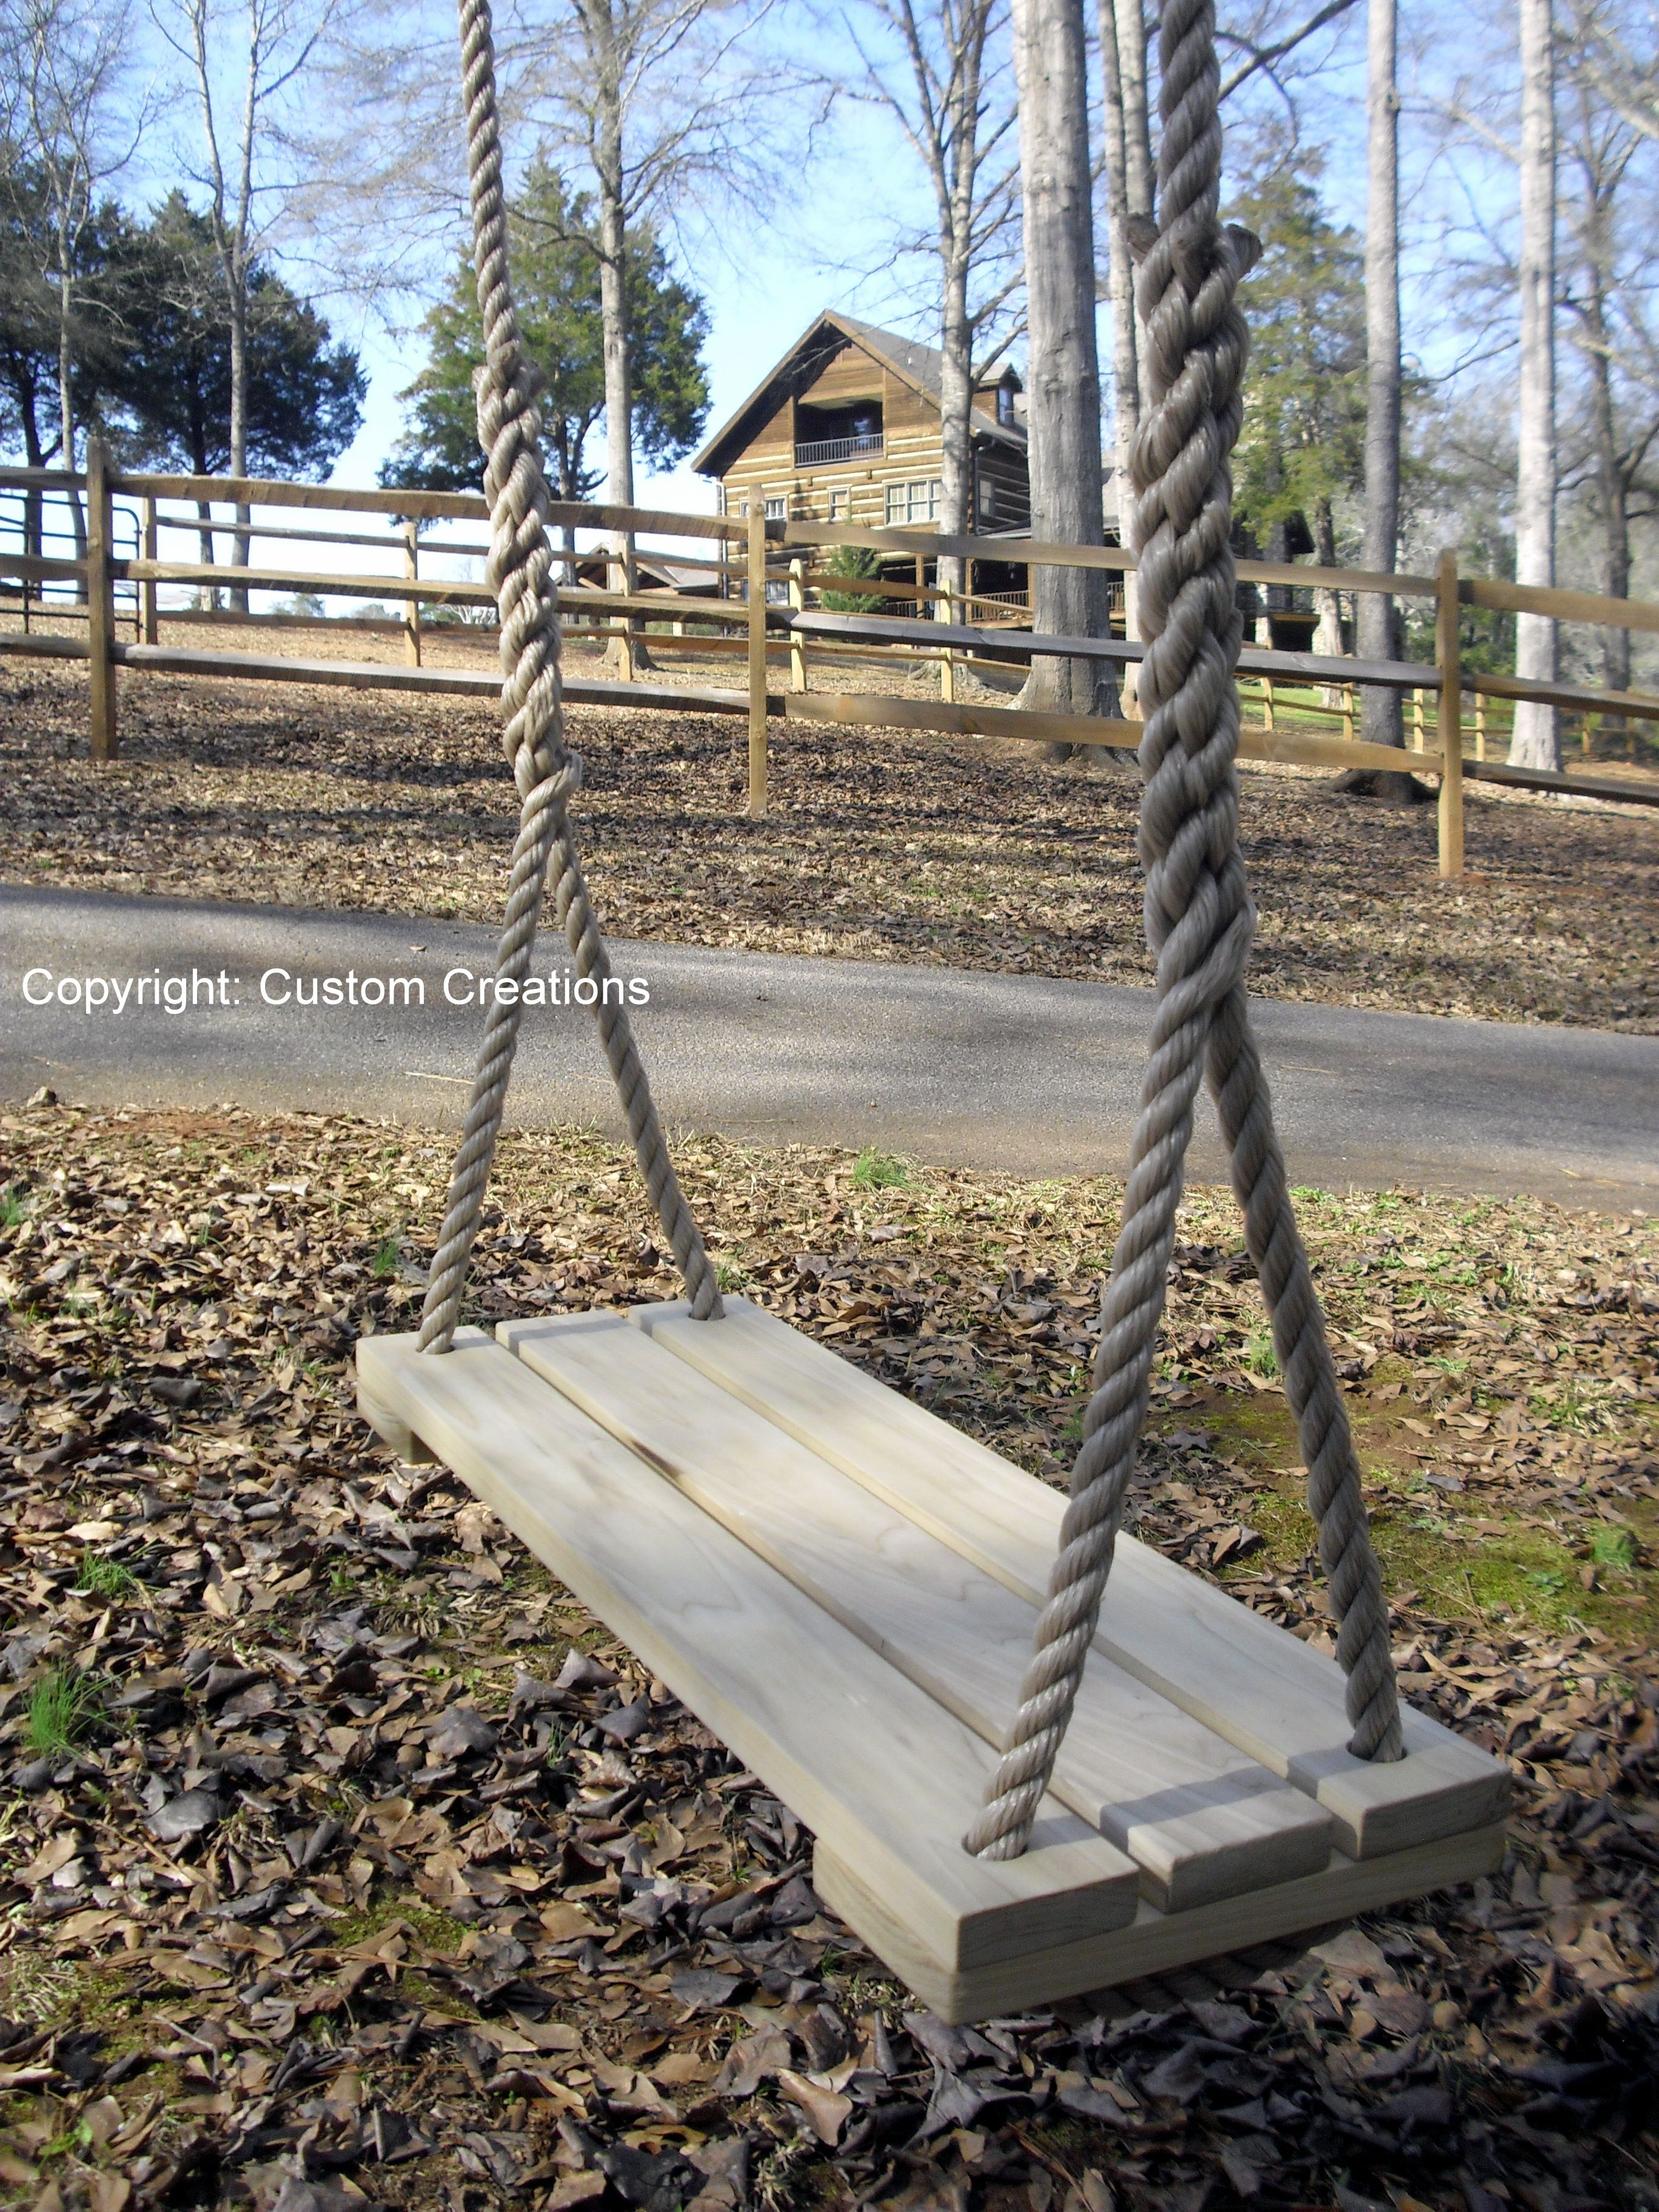 It's hard to beat the beauty of Poplar wood. Our Poplar swings are some of our favorites and are very well built providing you with an attractive swing that stands up to mother nature year after year. Enjoy!